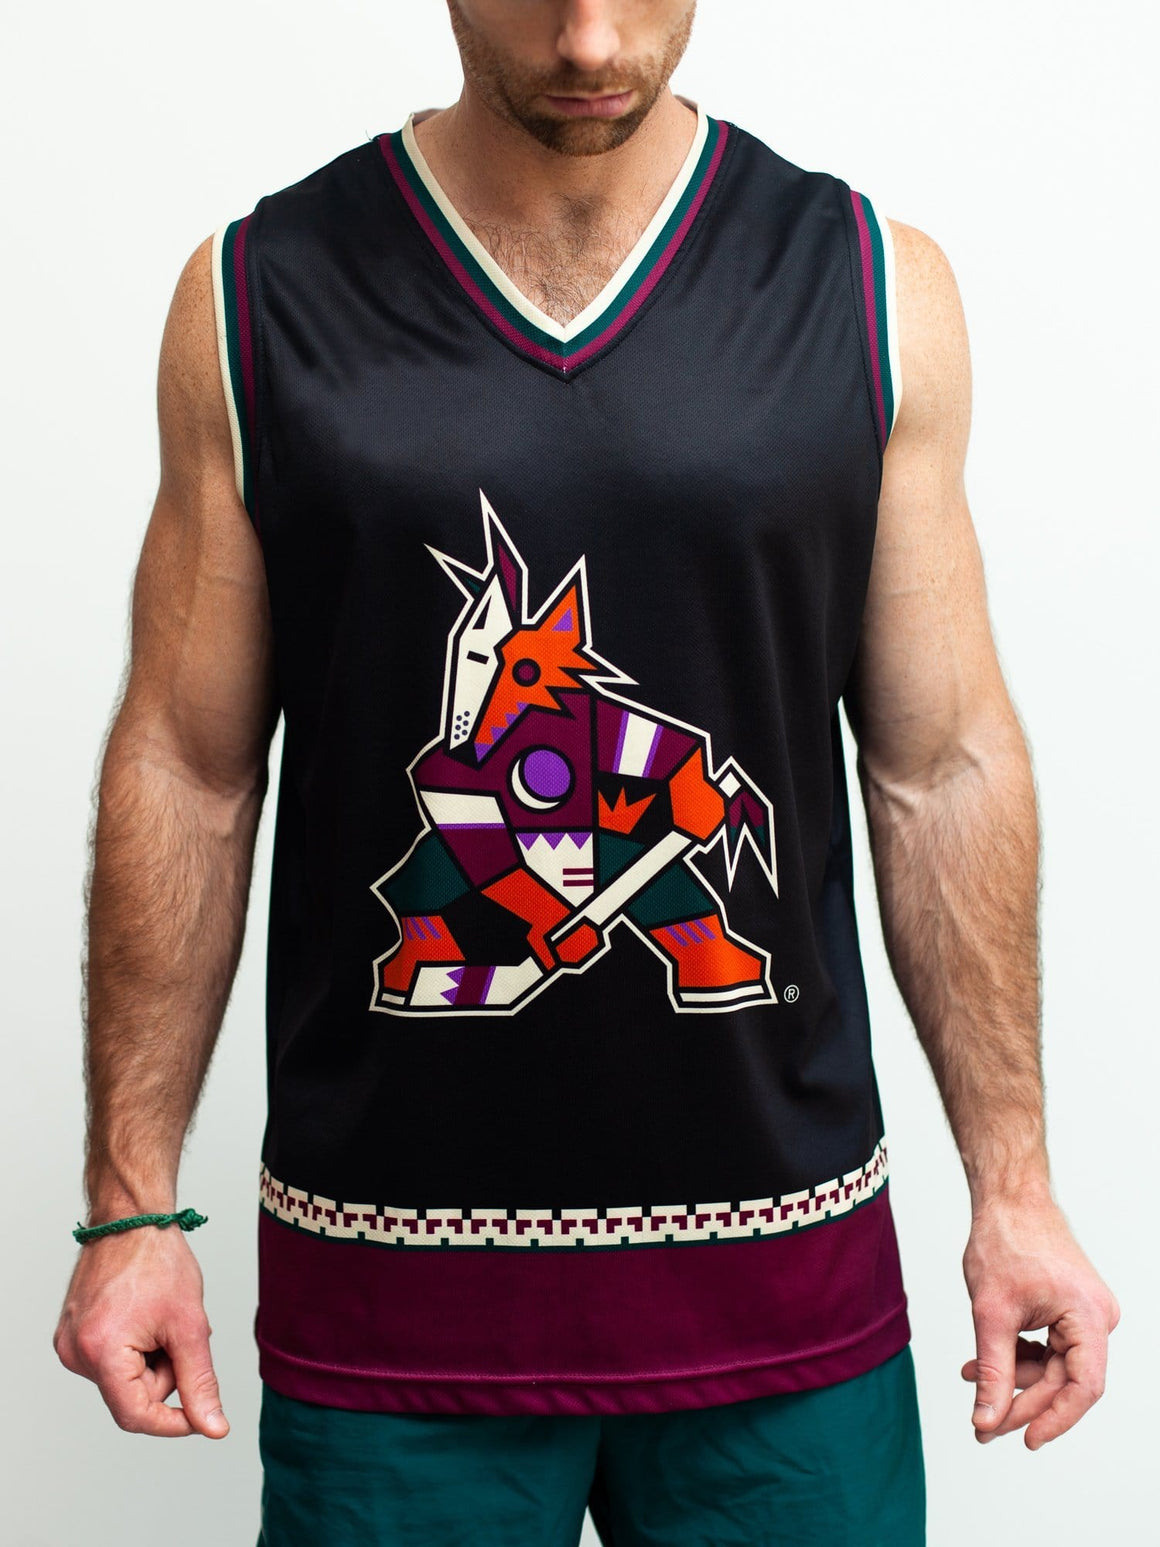 Arizona Coyotes Retro Alternate Hockey Tank